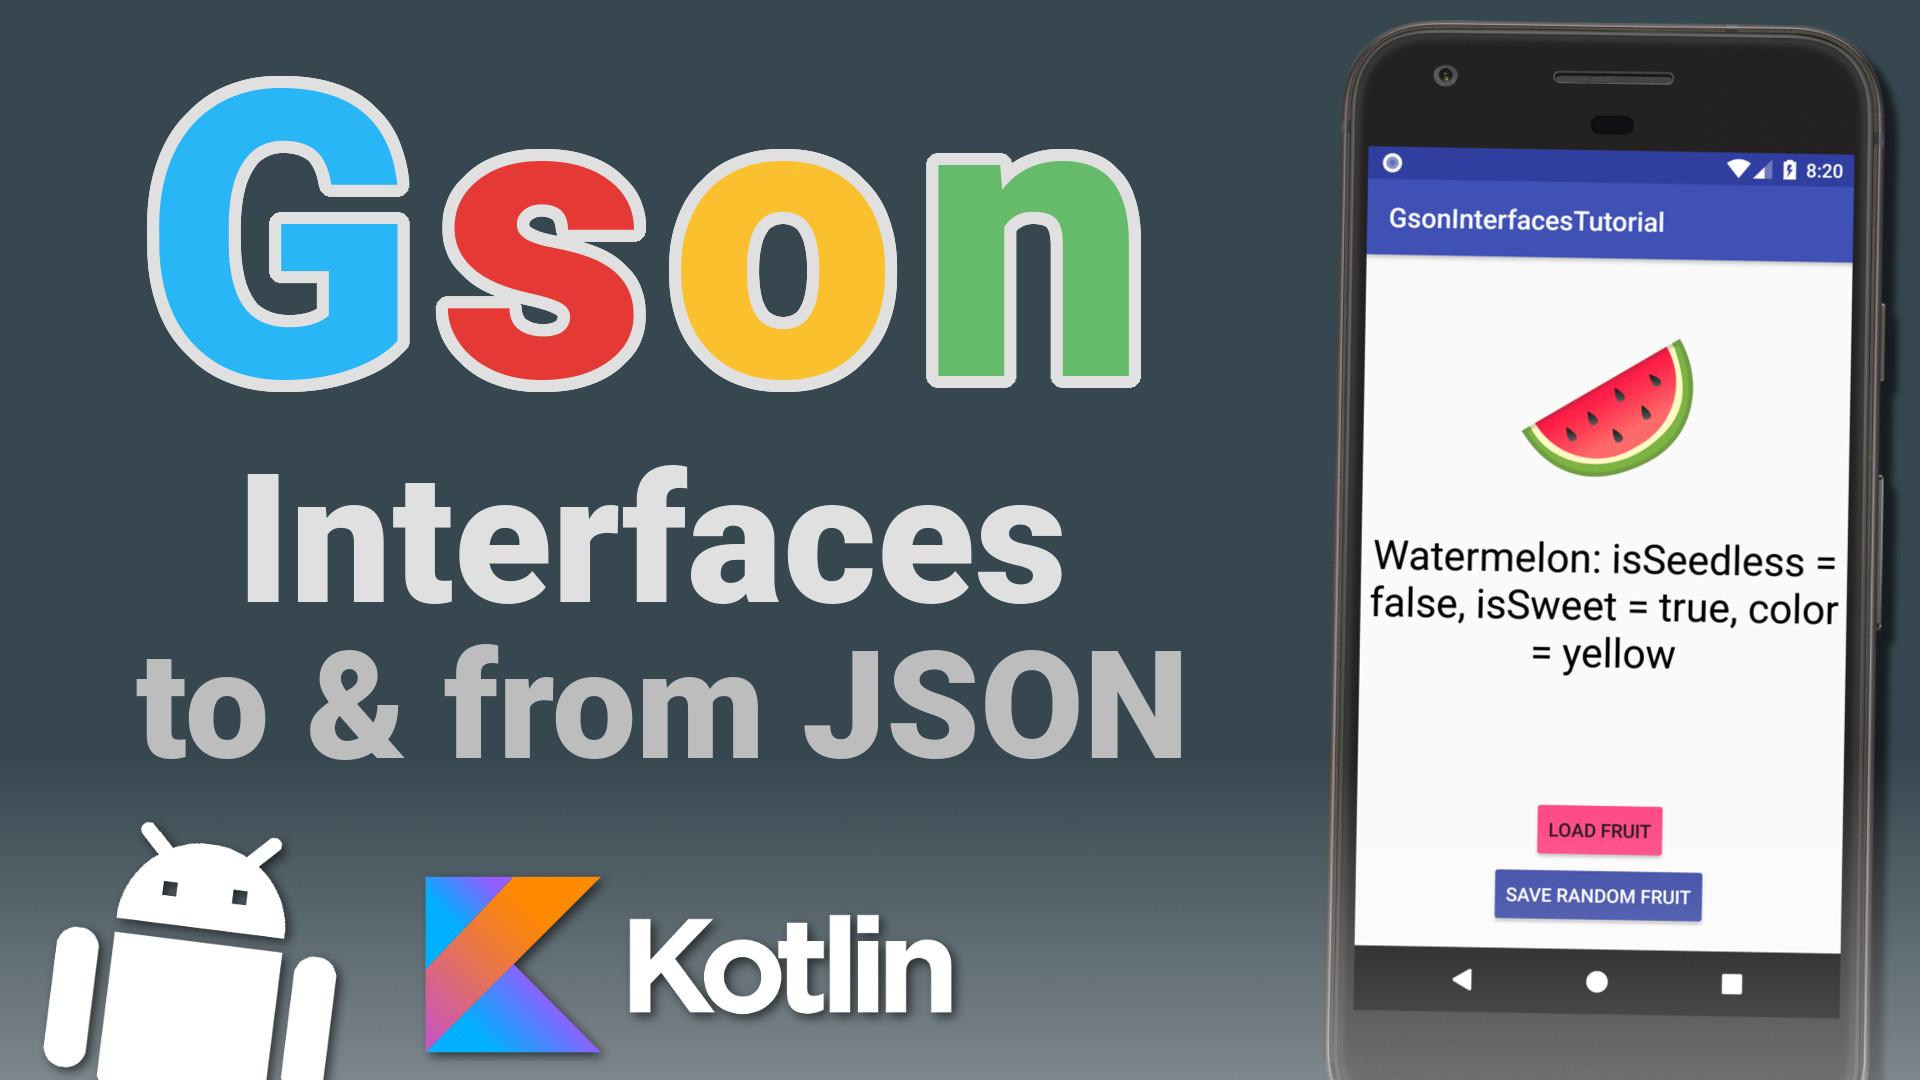 Gson Android Kotlin Tutorial – Convert Interfaces to & from JSON